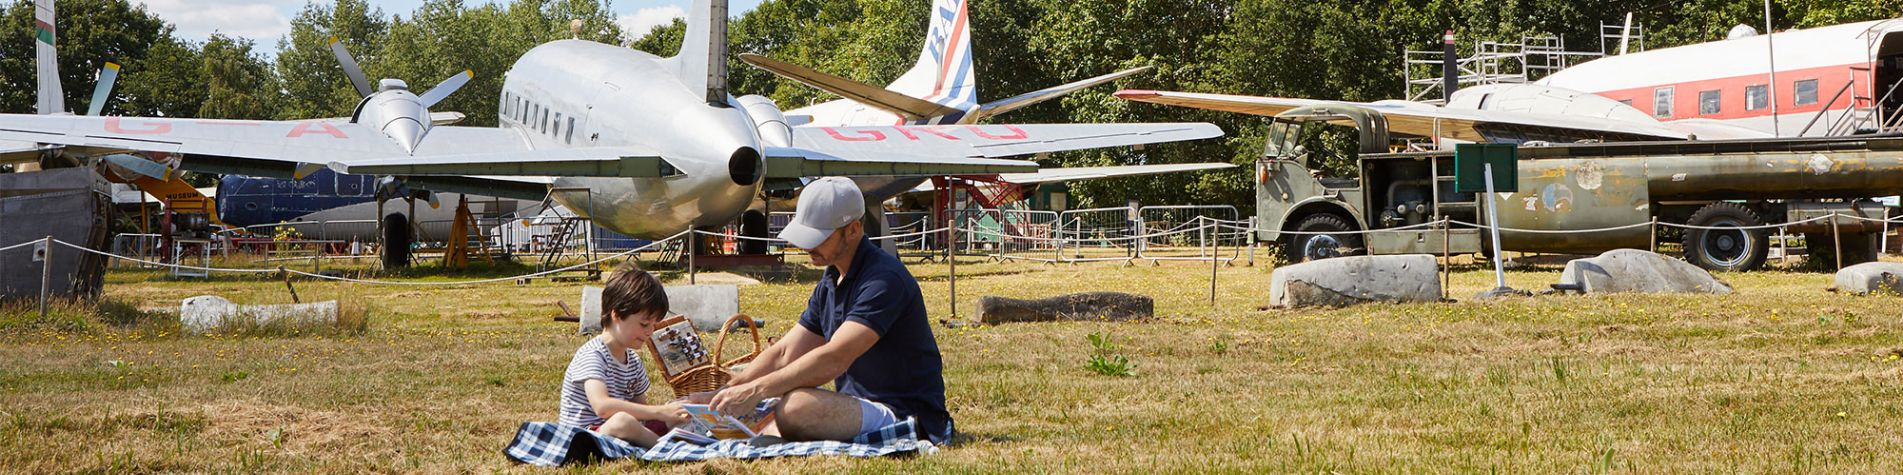 picnic-in-the-aircraft-park--header-CC-sarah-Hogan.jpg